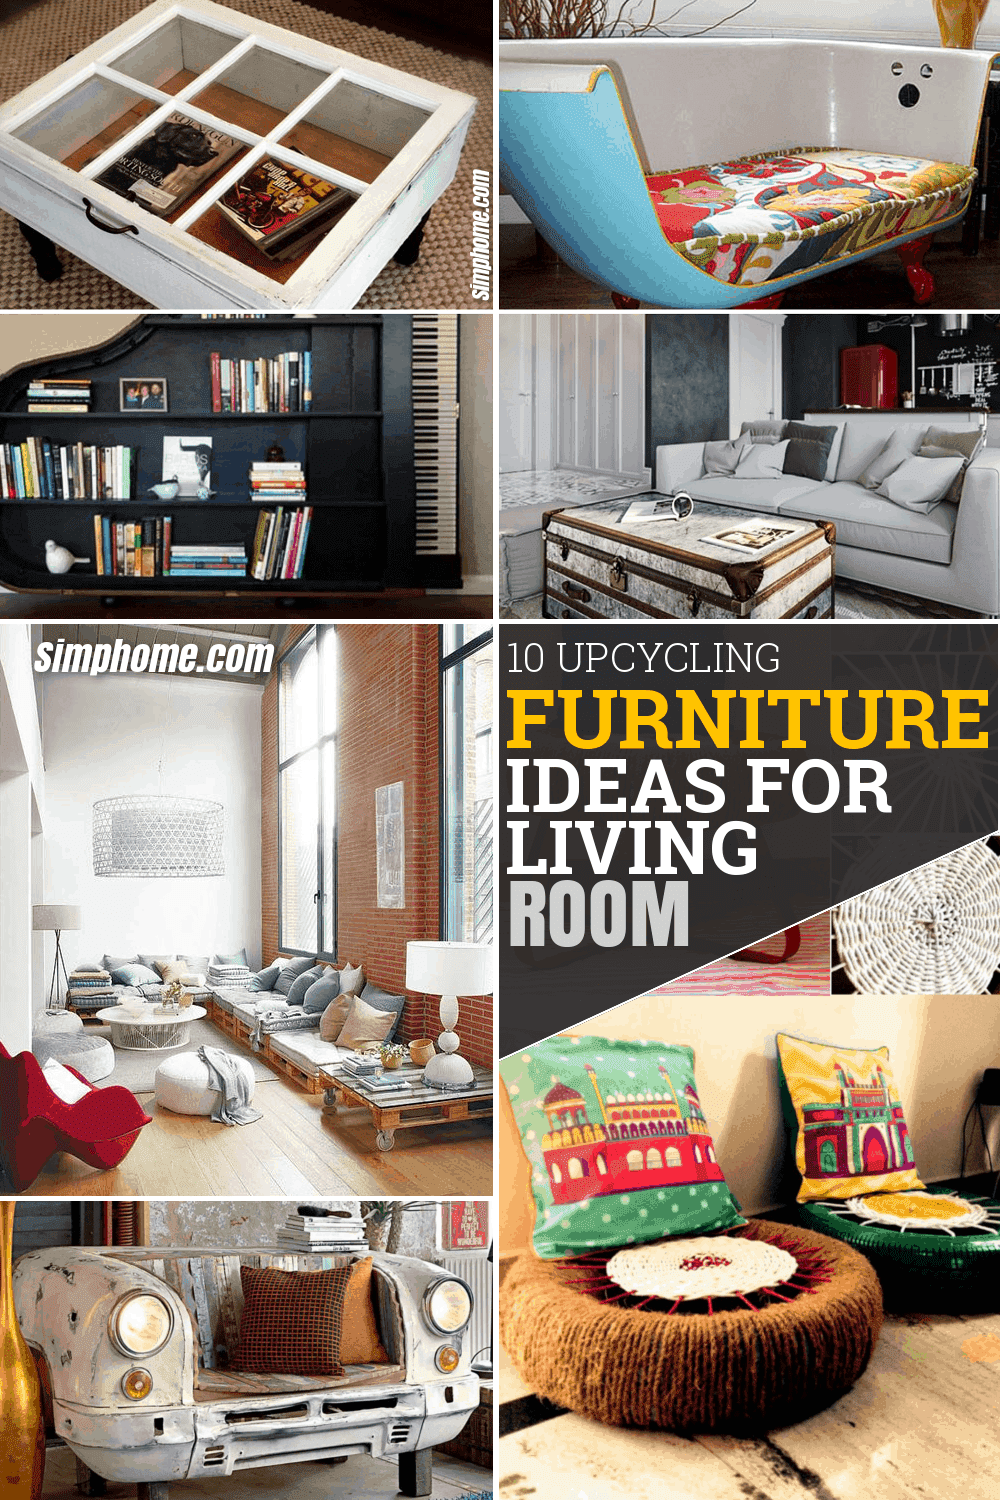 10 Upcycling Furniture Ideas for a Living Room via Simphome.com Featured Pinterest Image 1